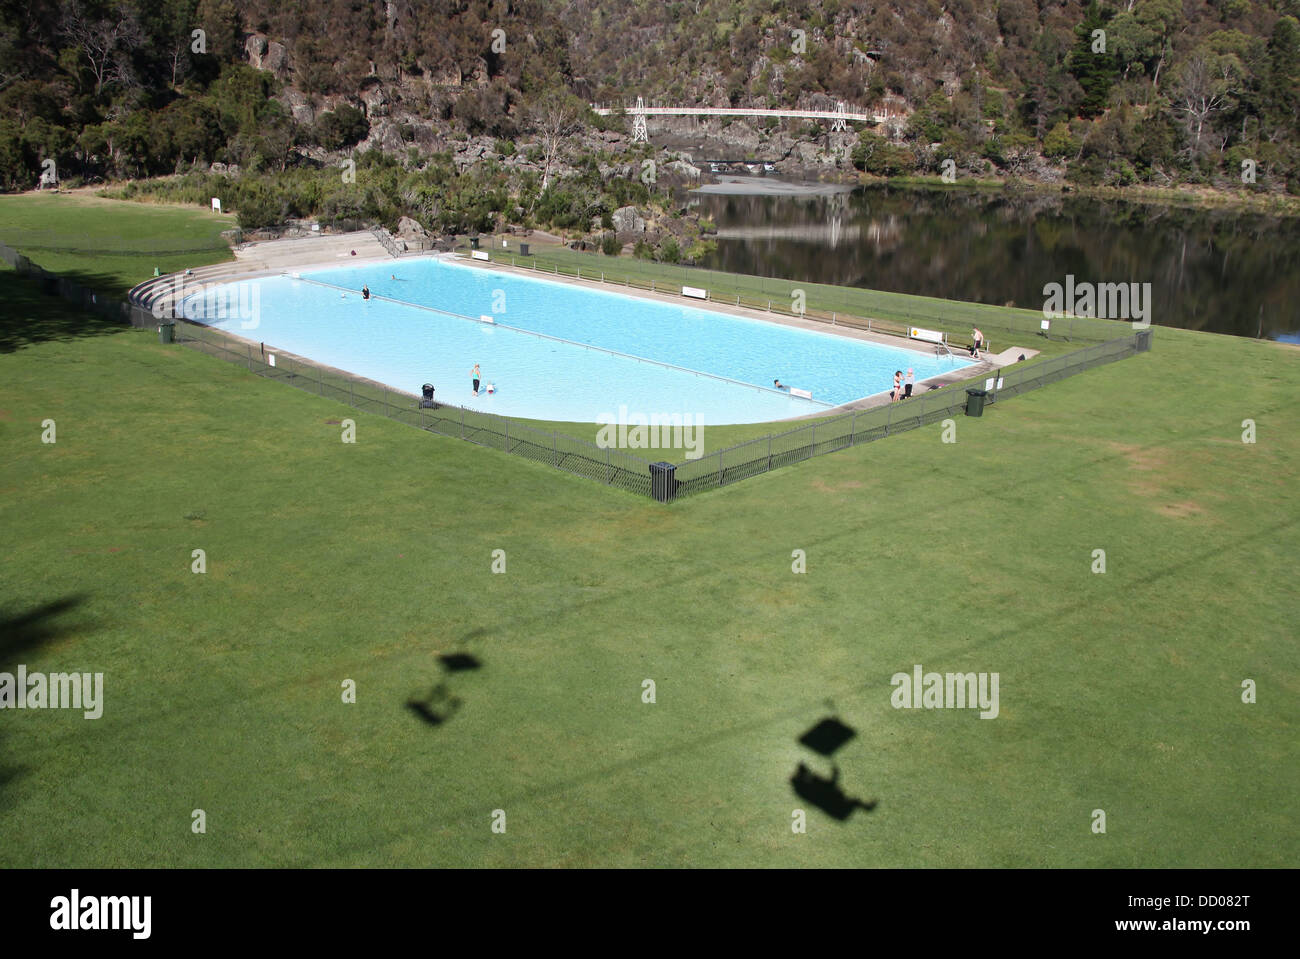 view from the chairlift of the first basin with the swimming pool